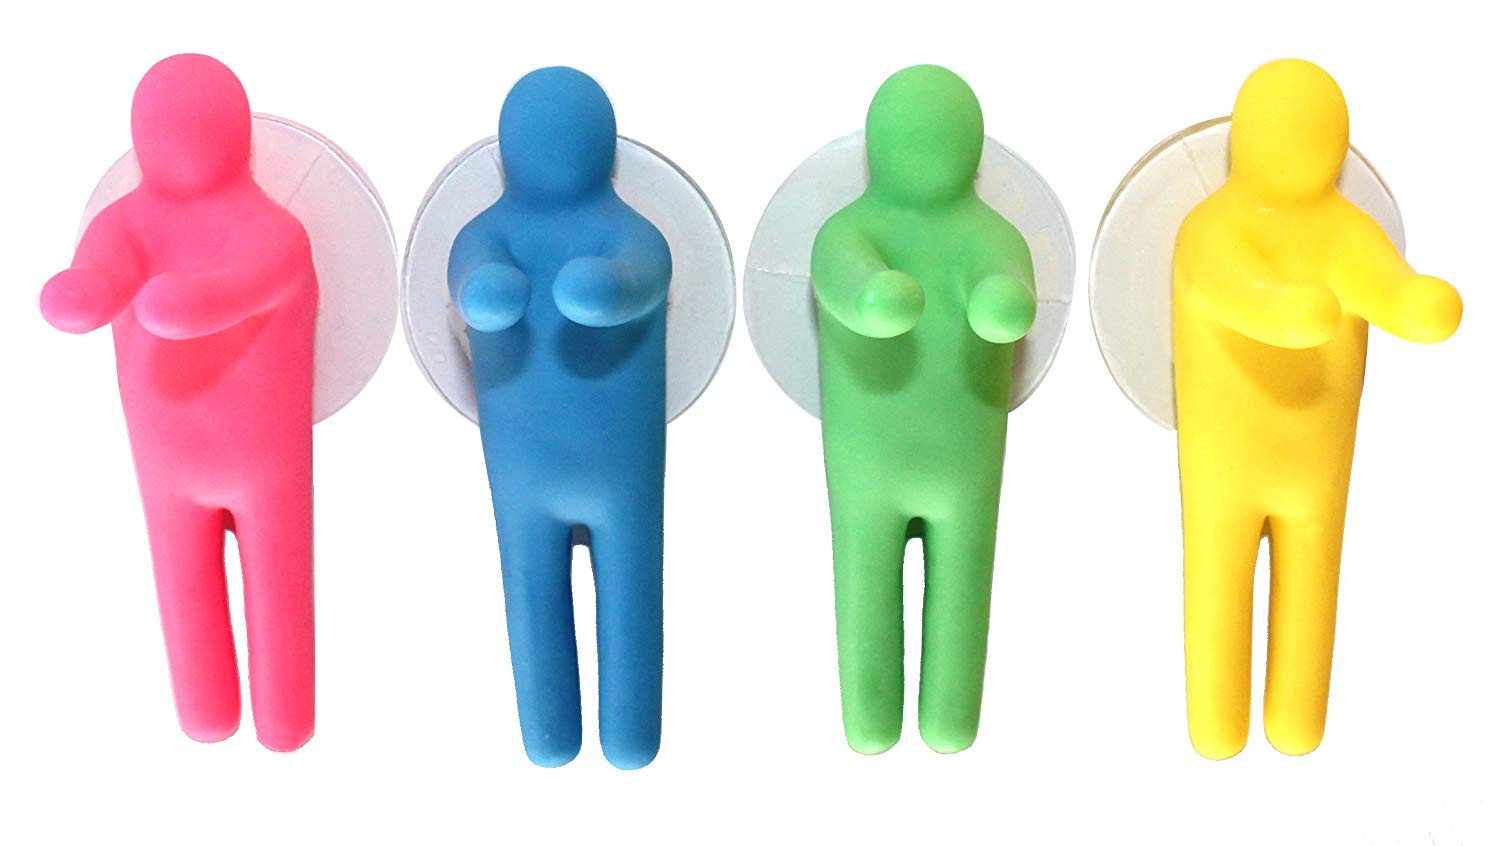 Lucore Colorful People Toothbrush Holder And Utility Suction Hook, Set of 4 Pc